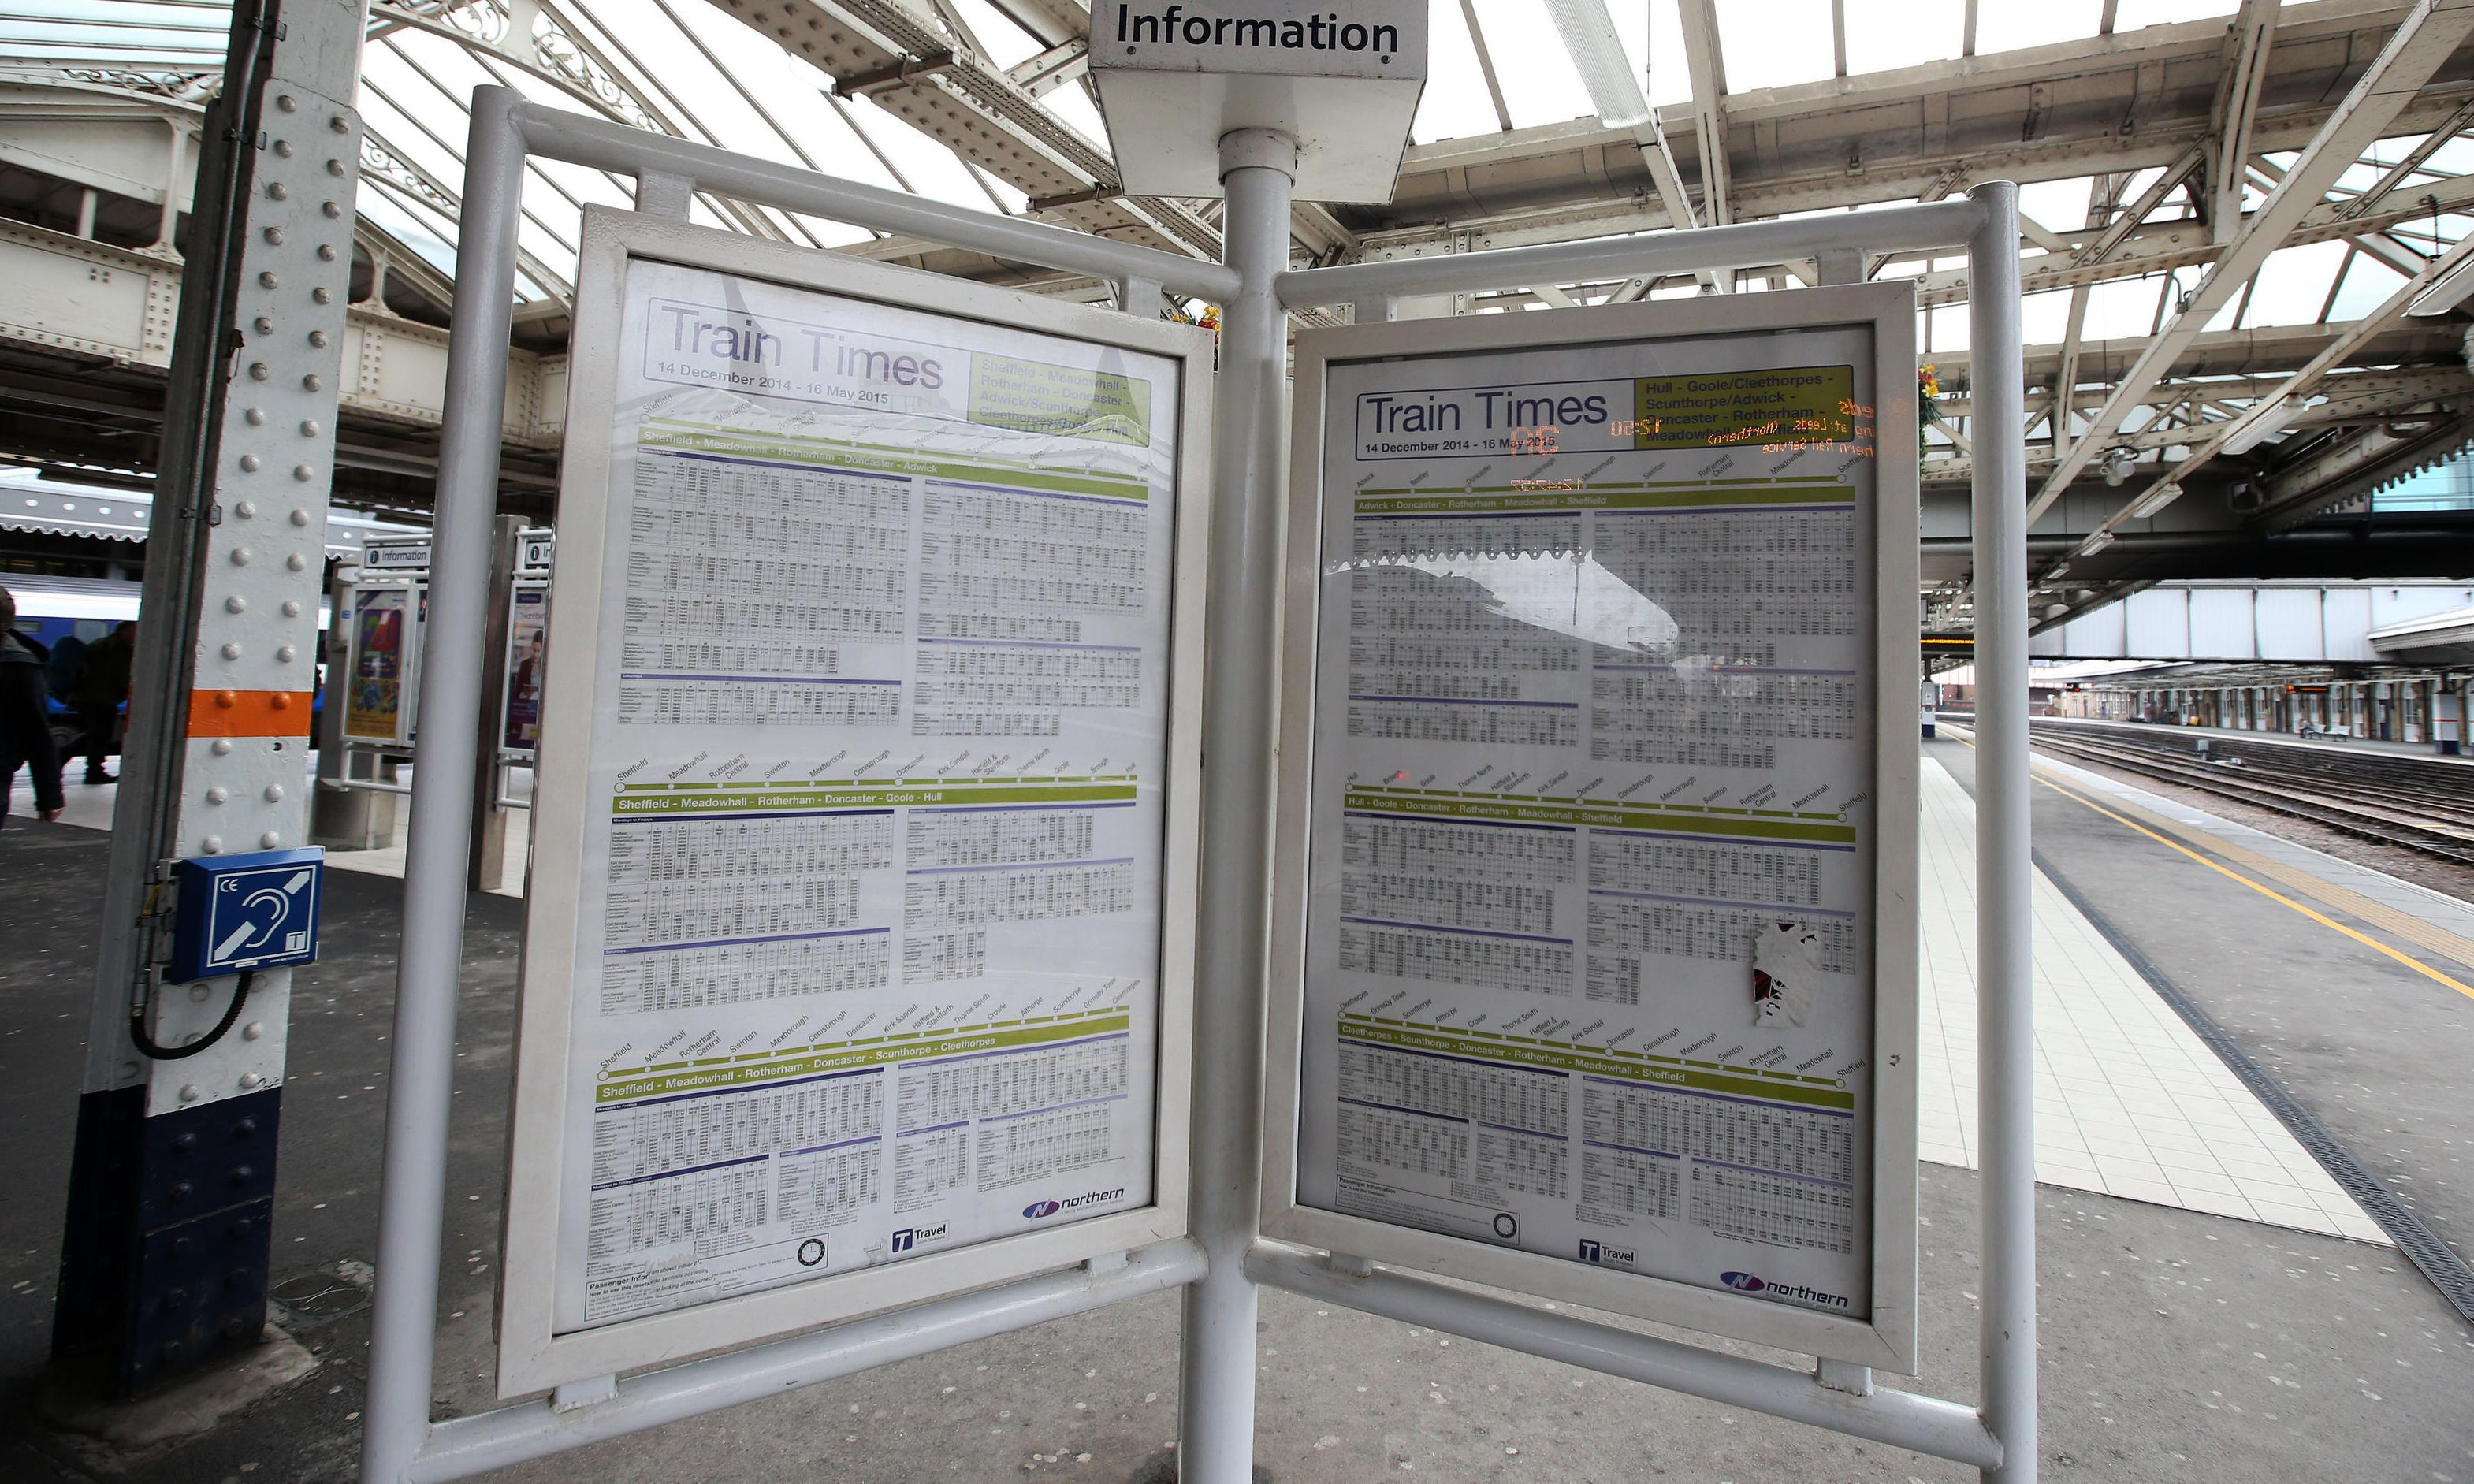 Staff shortages hit rail services as new timetable takes effect